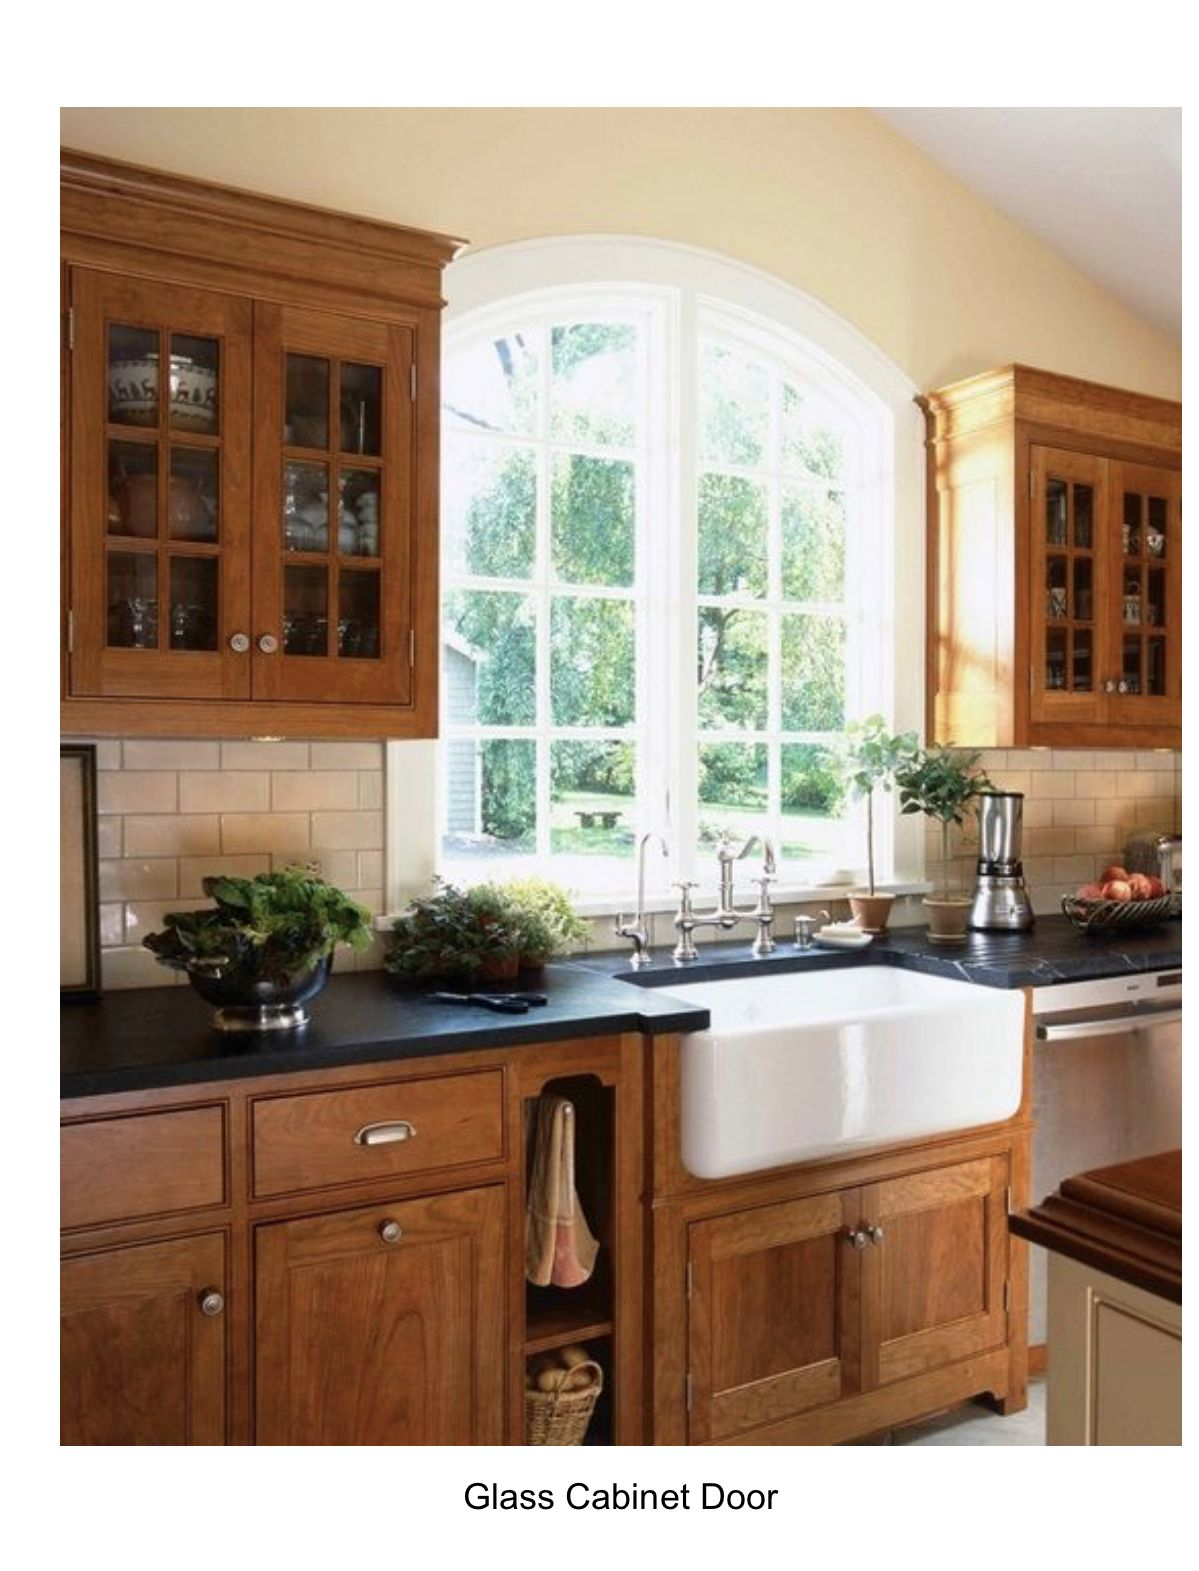 Pin By Terri Bunch On Kitchen In 2020 New Kitchen Cabinets Kitchen Cabinet Design Wood Kitchen Cabinets